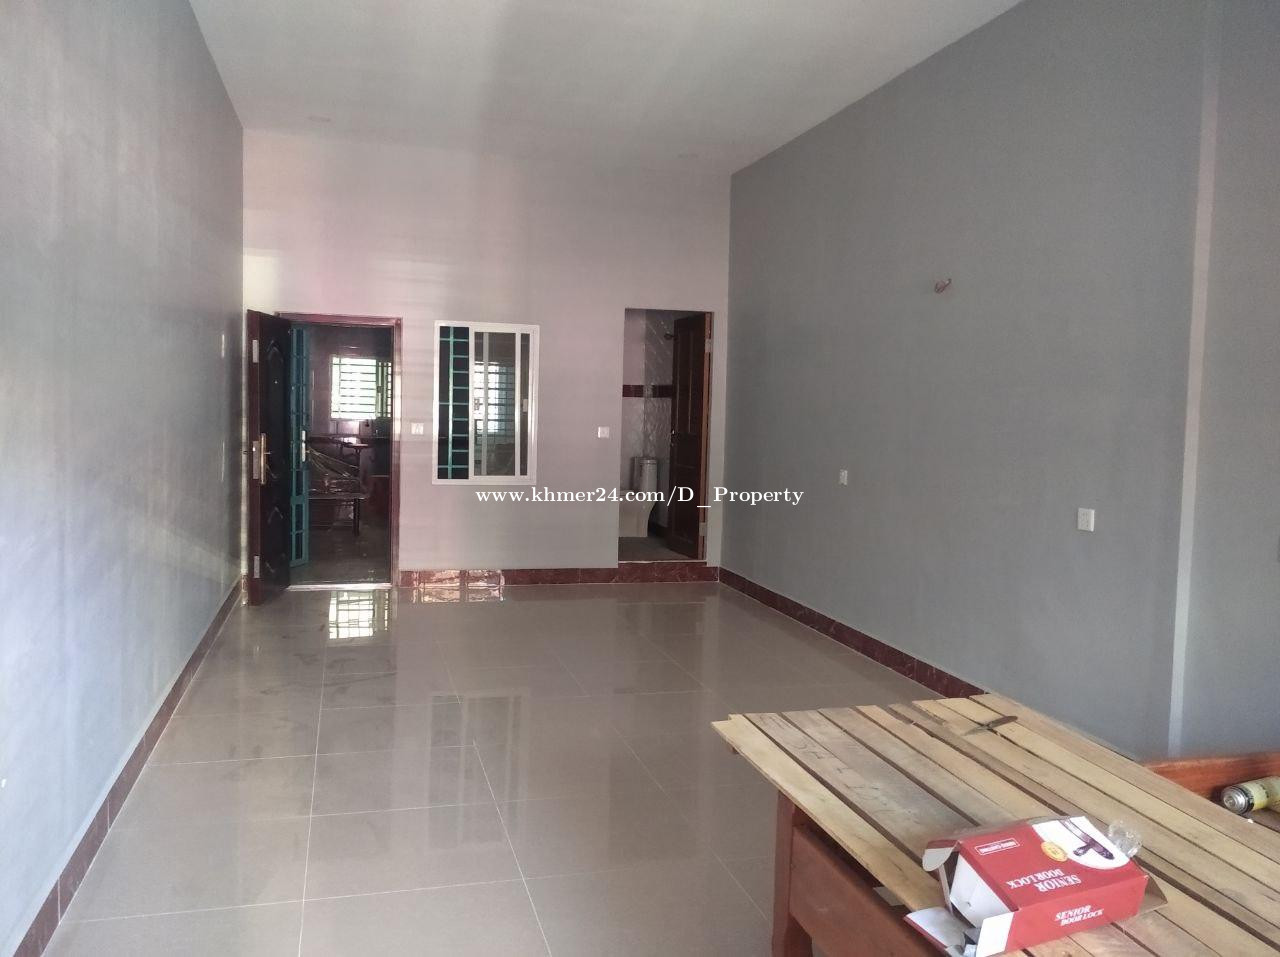 Apartment for Rent (1B; Bali &CIA Area)